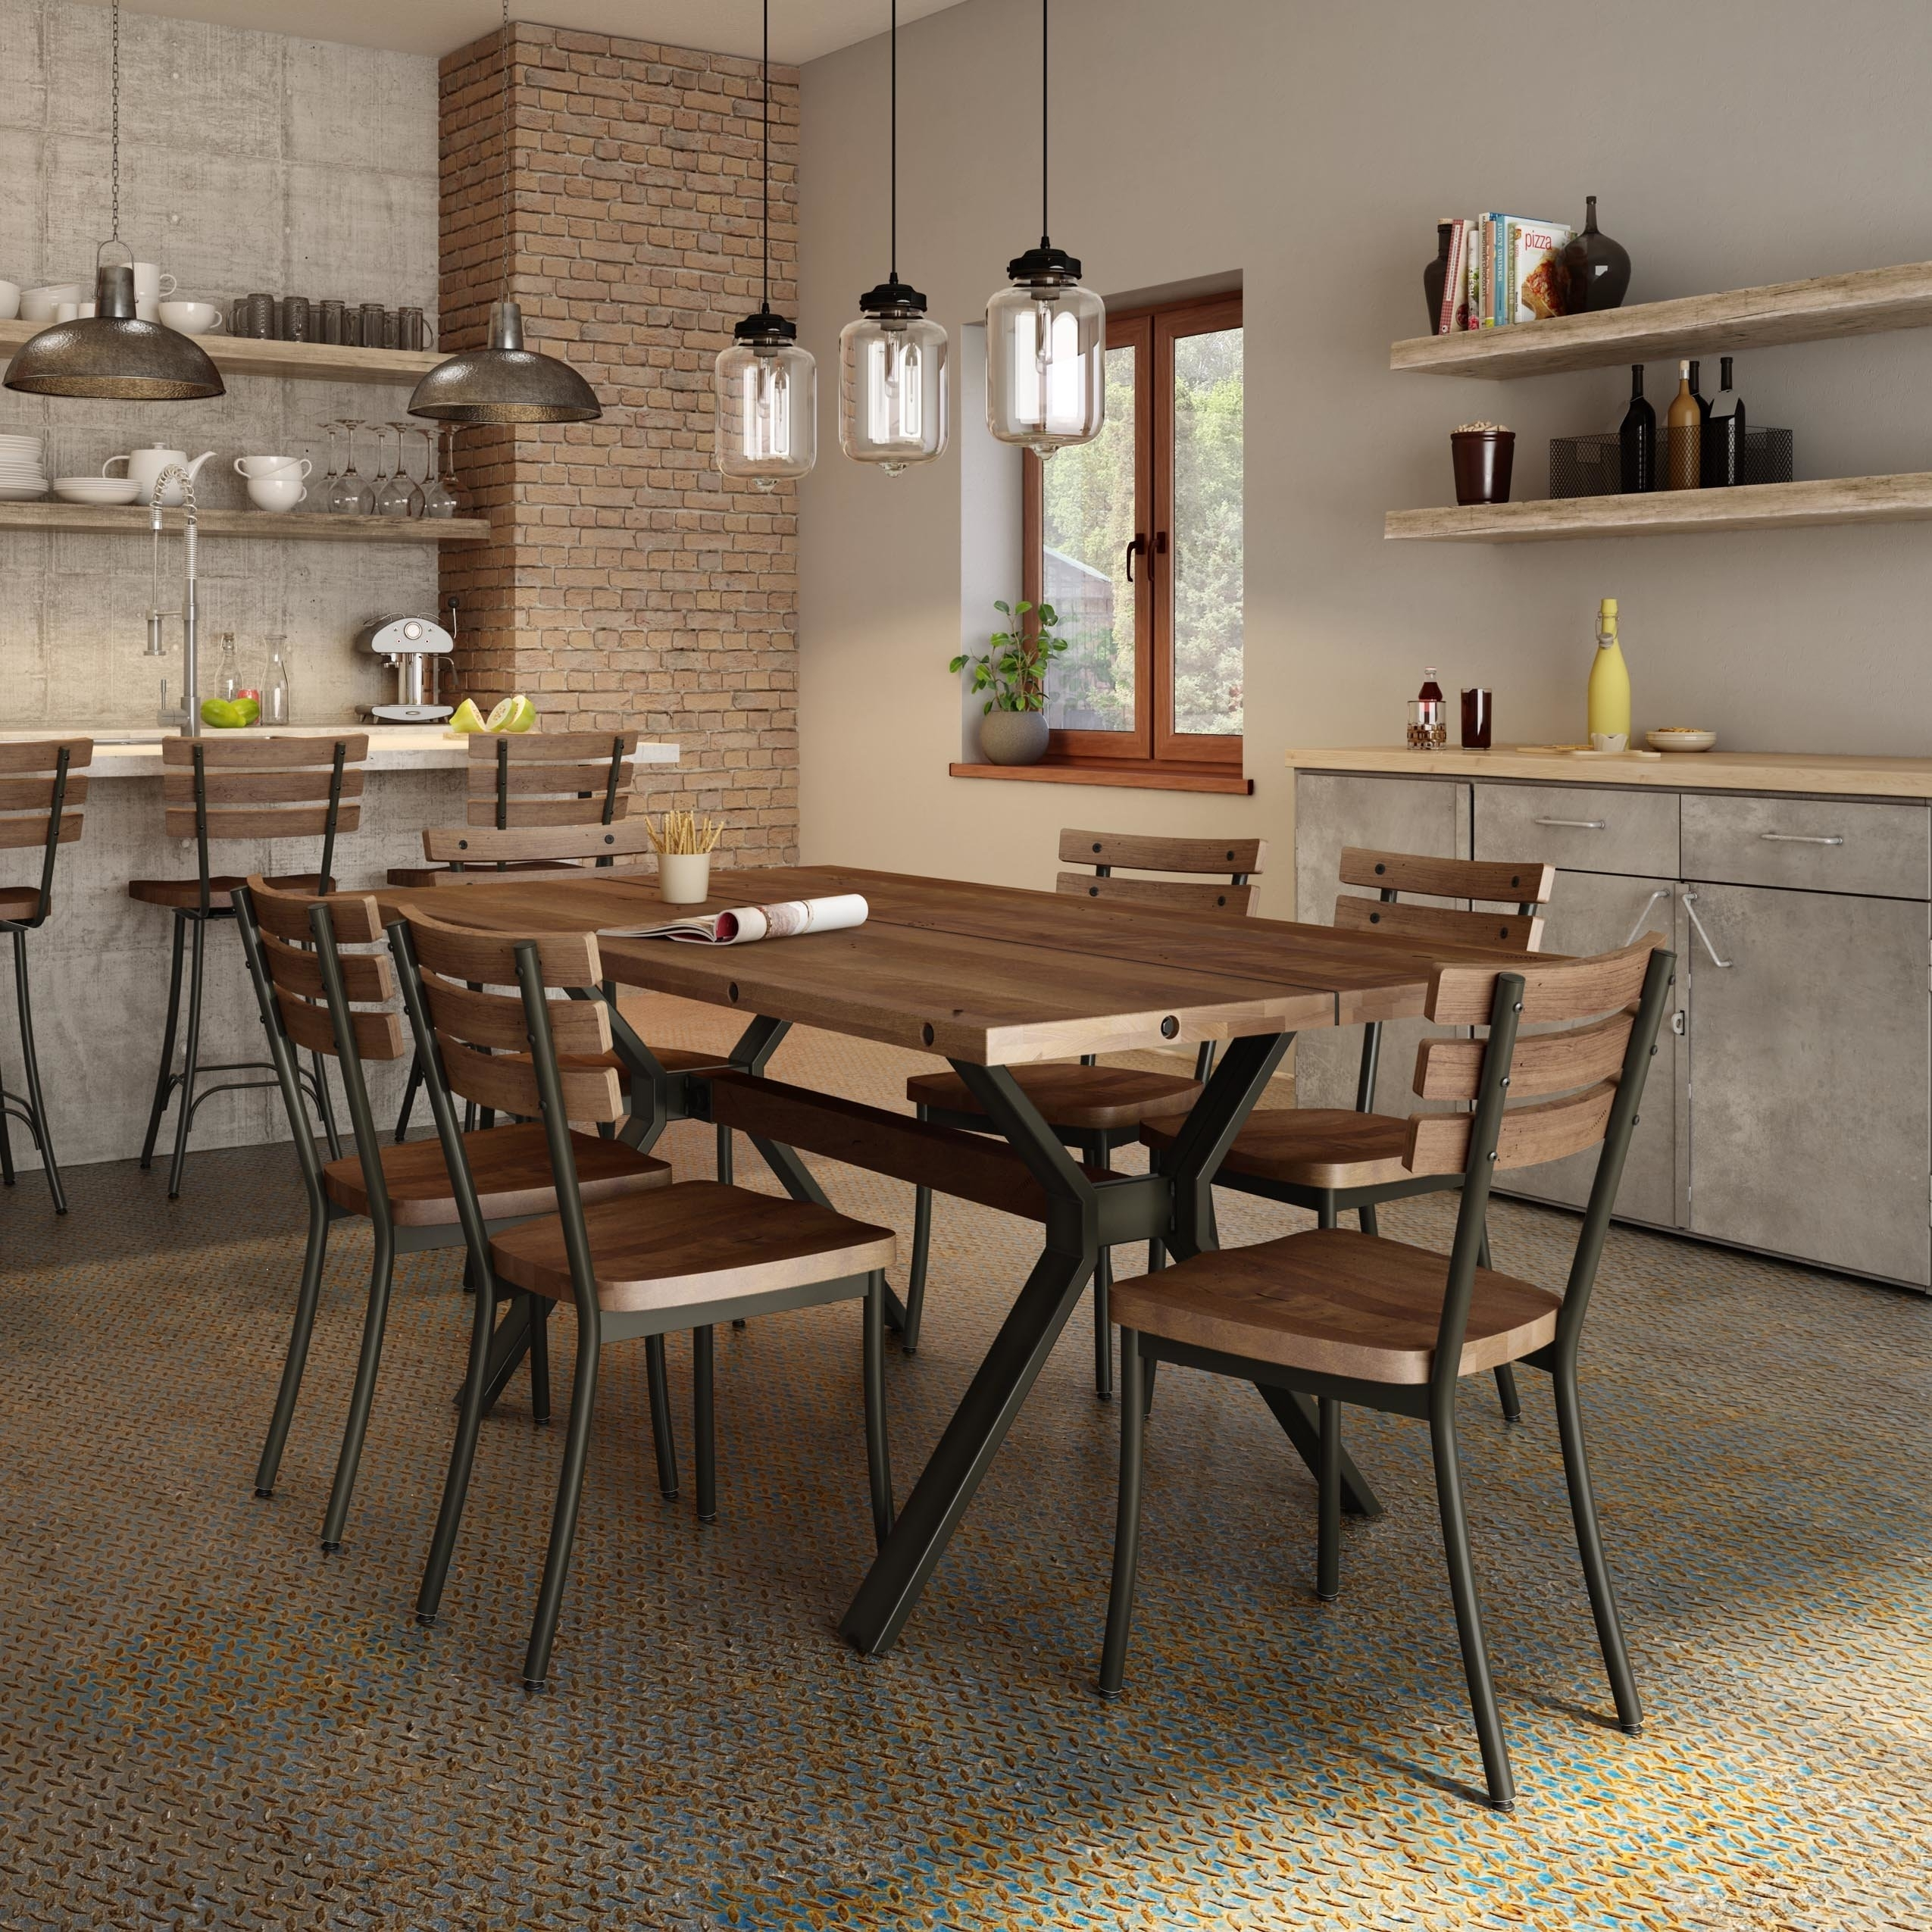 17 Stories Darcelle 5 Piece Industrial Dining Set | Wayfair Within Newest Laurent 5 Piece Round Dining Sets With Wood Chairs (Image 1 of 20)